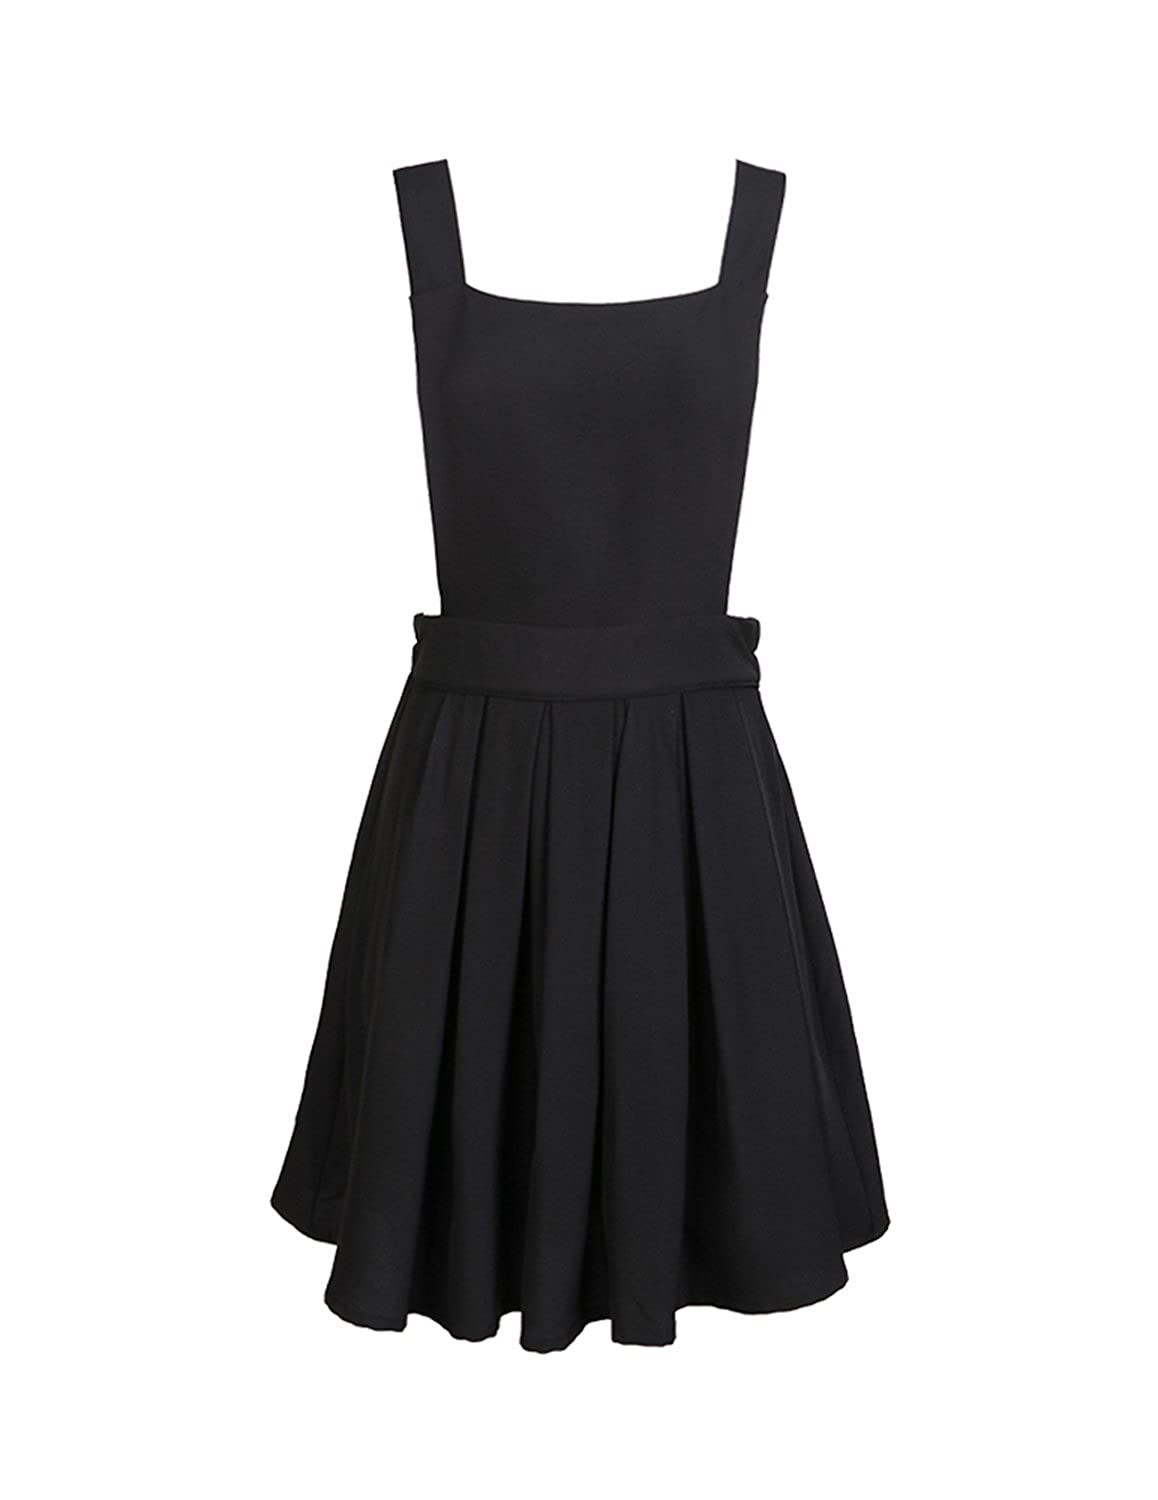 Hao Duo Yi Women's Classic Overall Suspender A Line Pleated Mini Dress by Hao Duo Yi